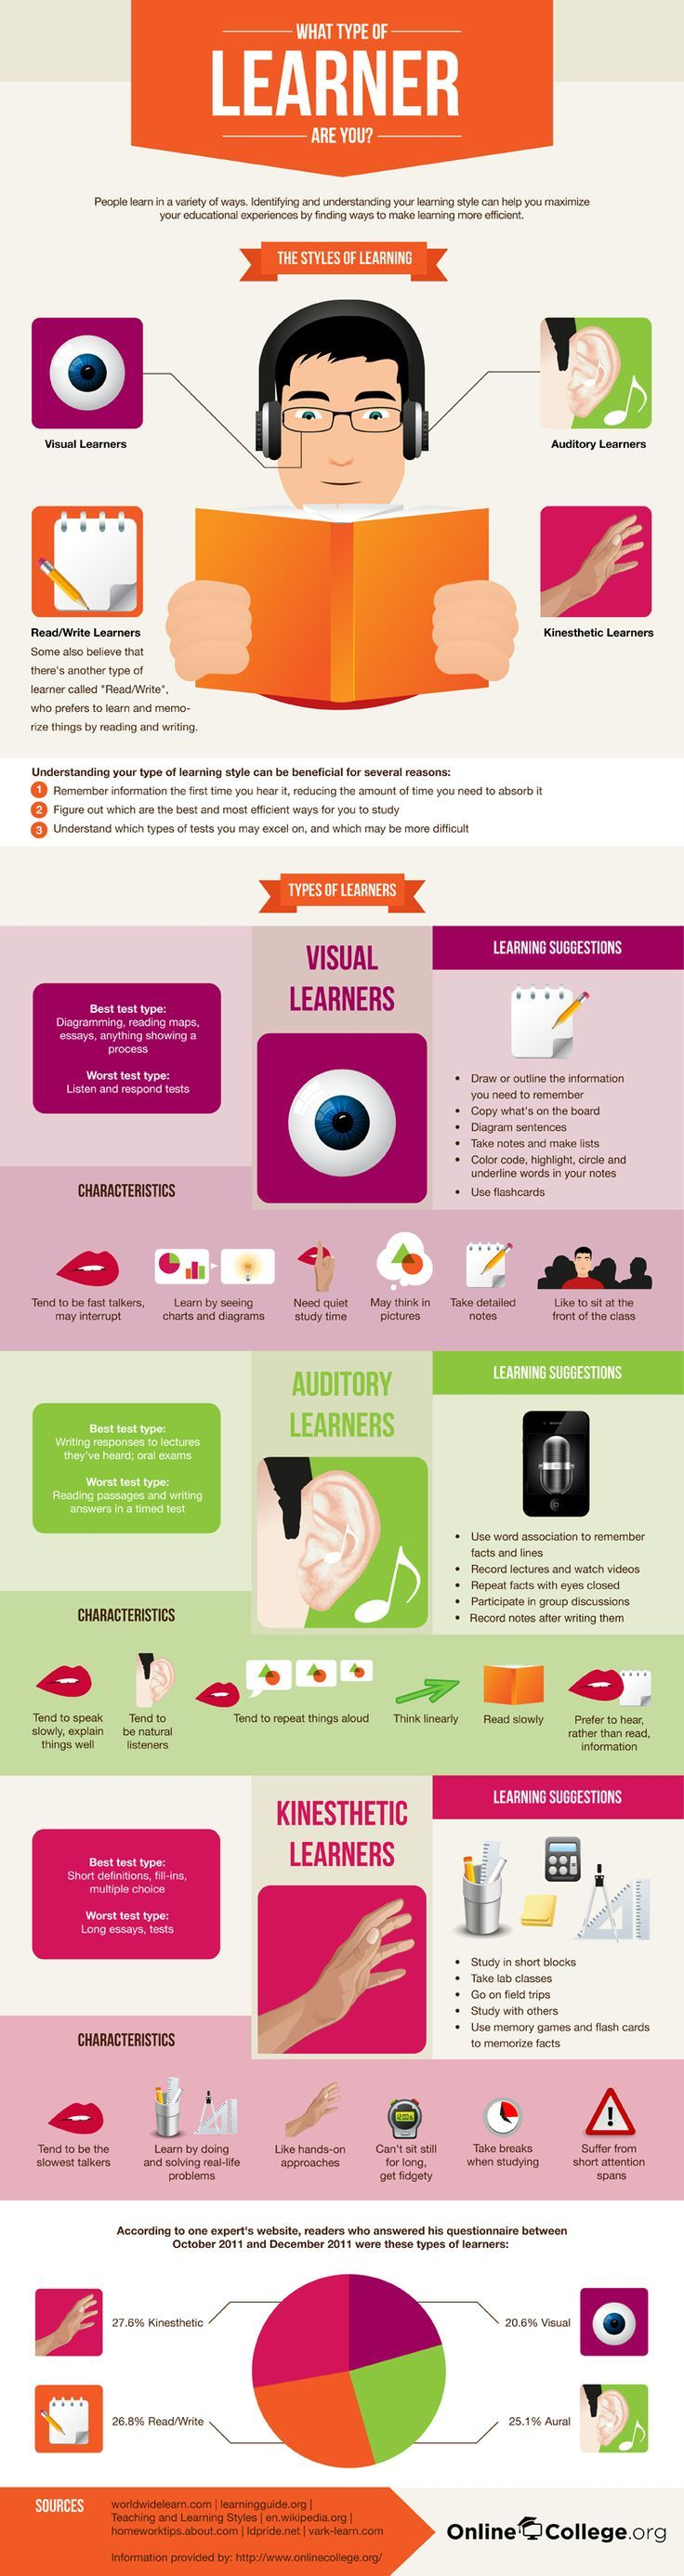 Learning Styles Infographic Repinned by  SOS Inc. Resources  http://pinterest.com/sostherapy